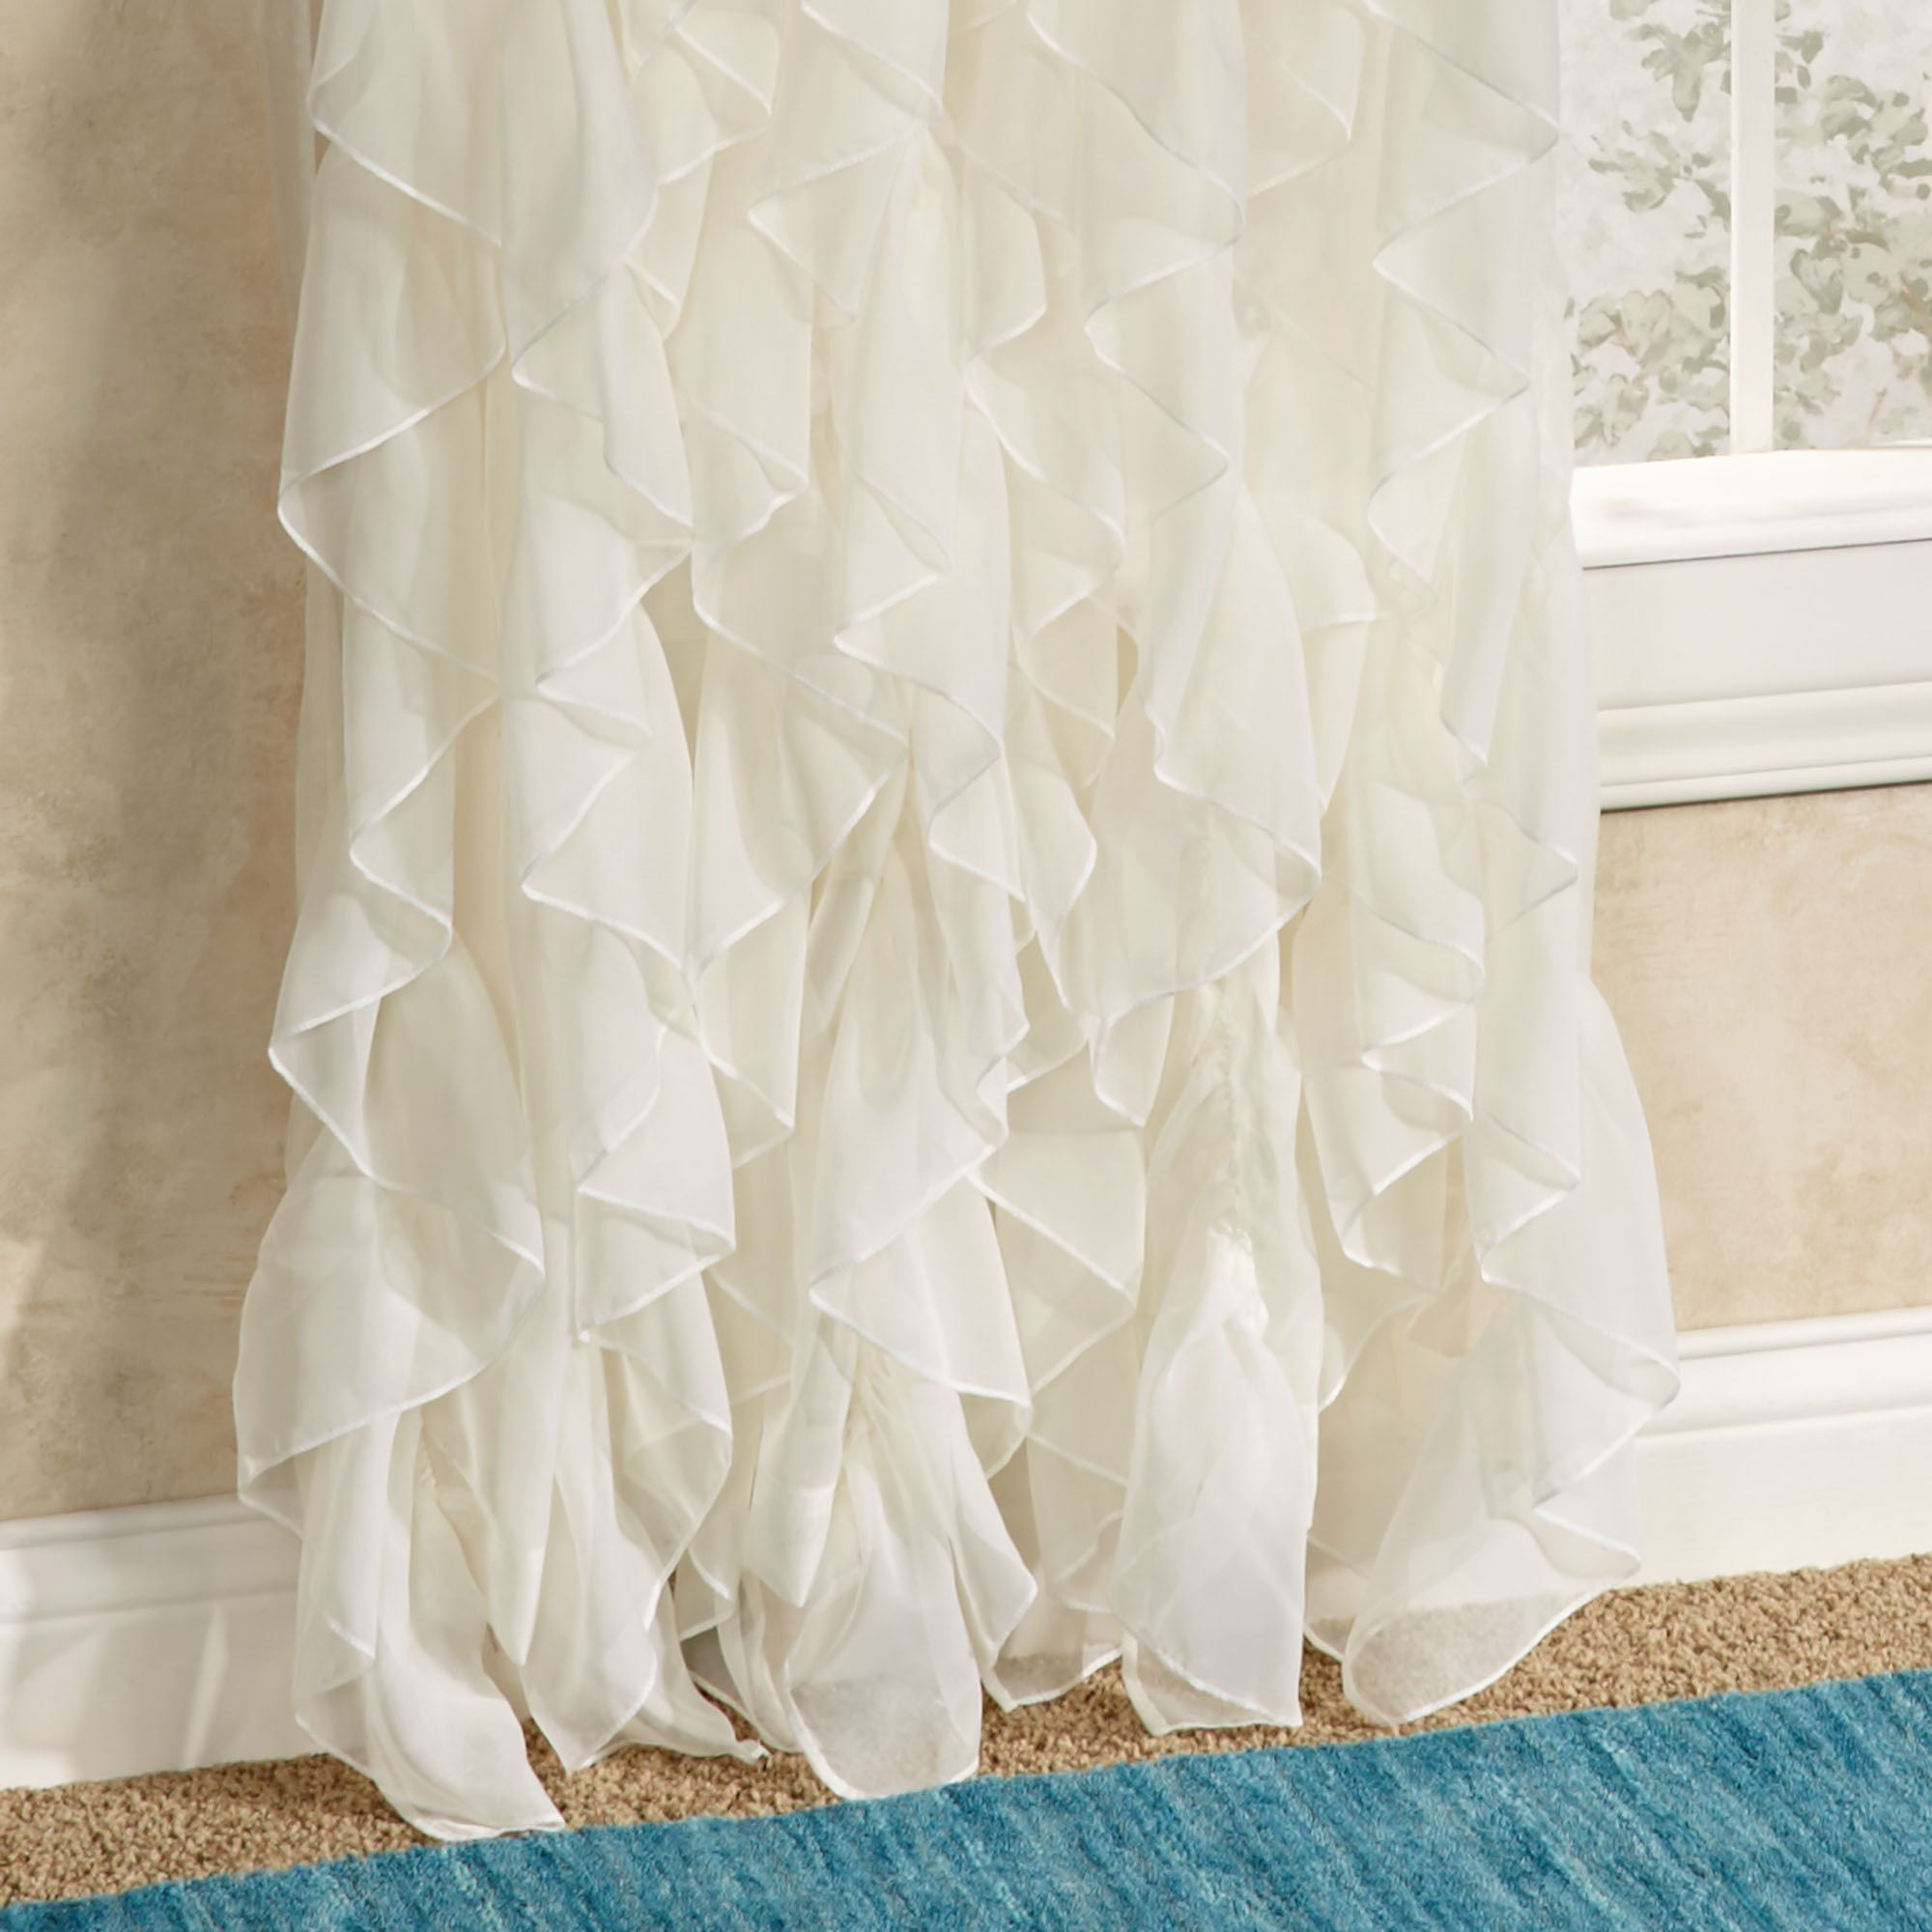 Ruffle Curtain Panel Cascade Sheer Voile Ruffled Window Treatment